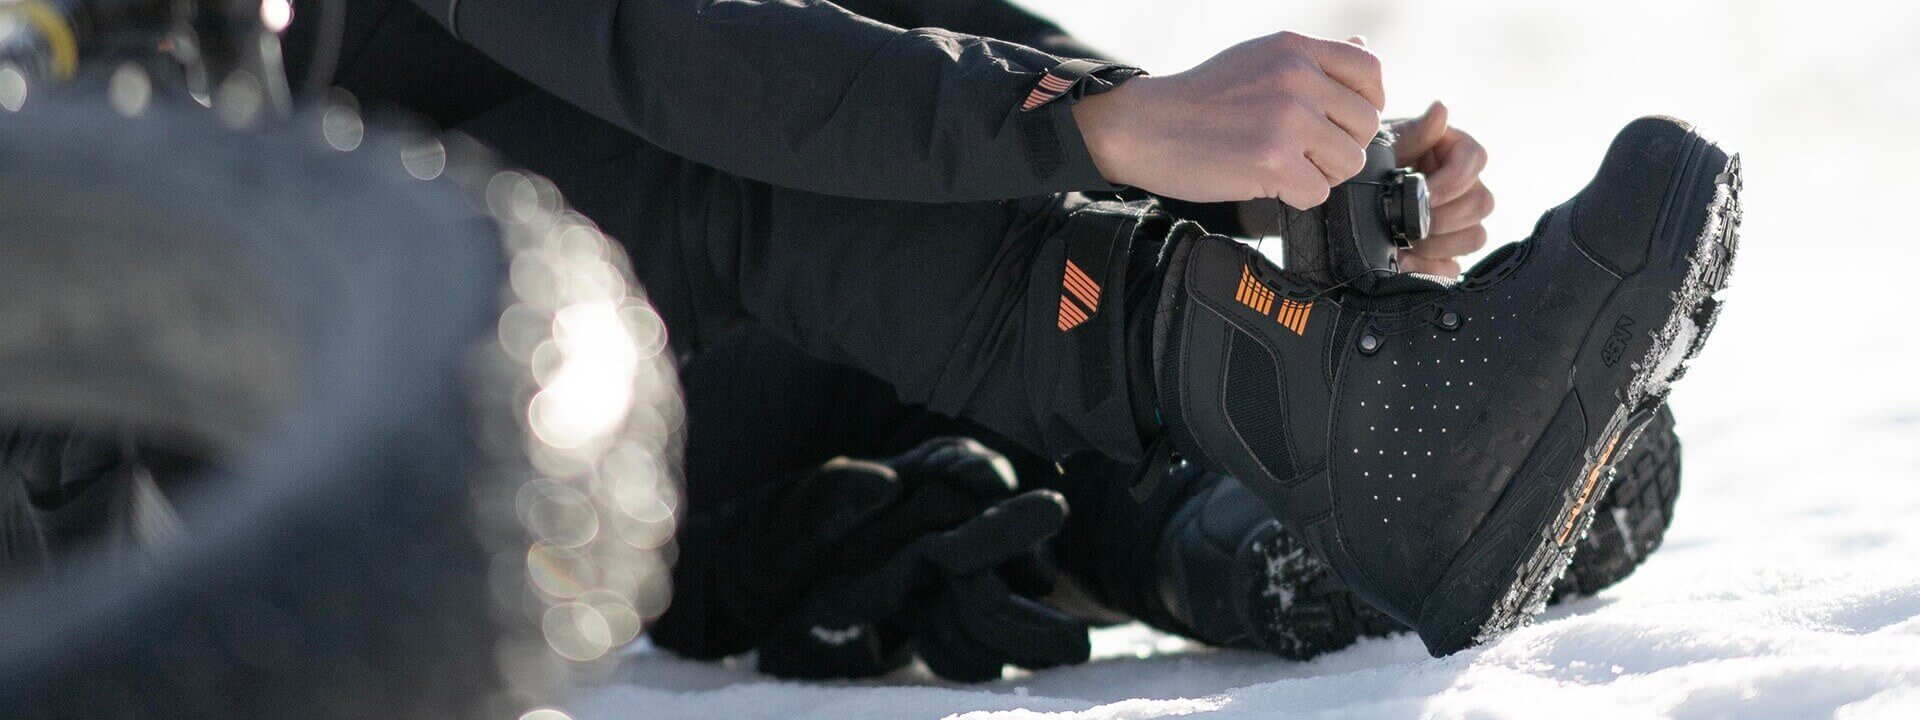 Cyclist sitting in snow putting on Wolvhammer Boa boot.